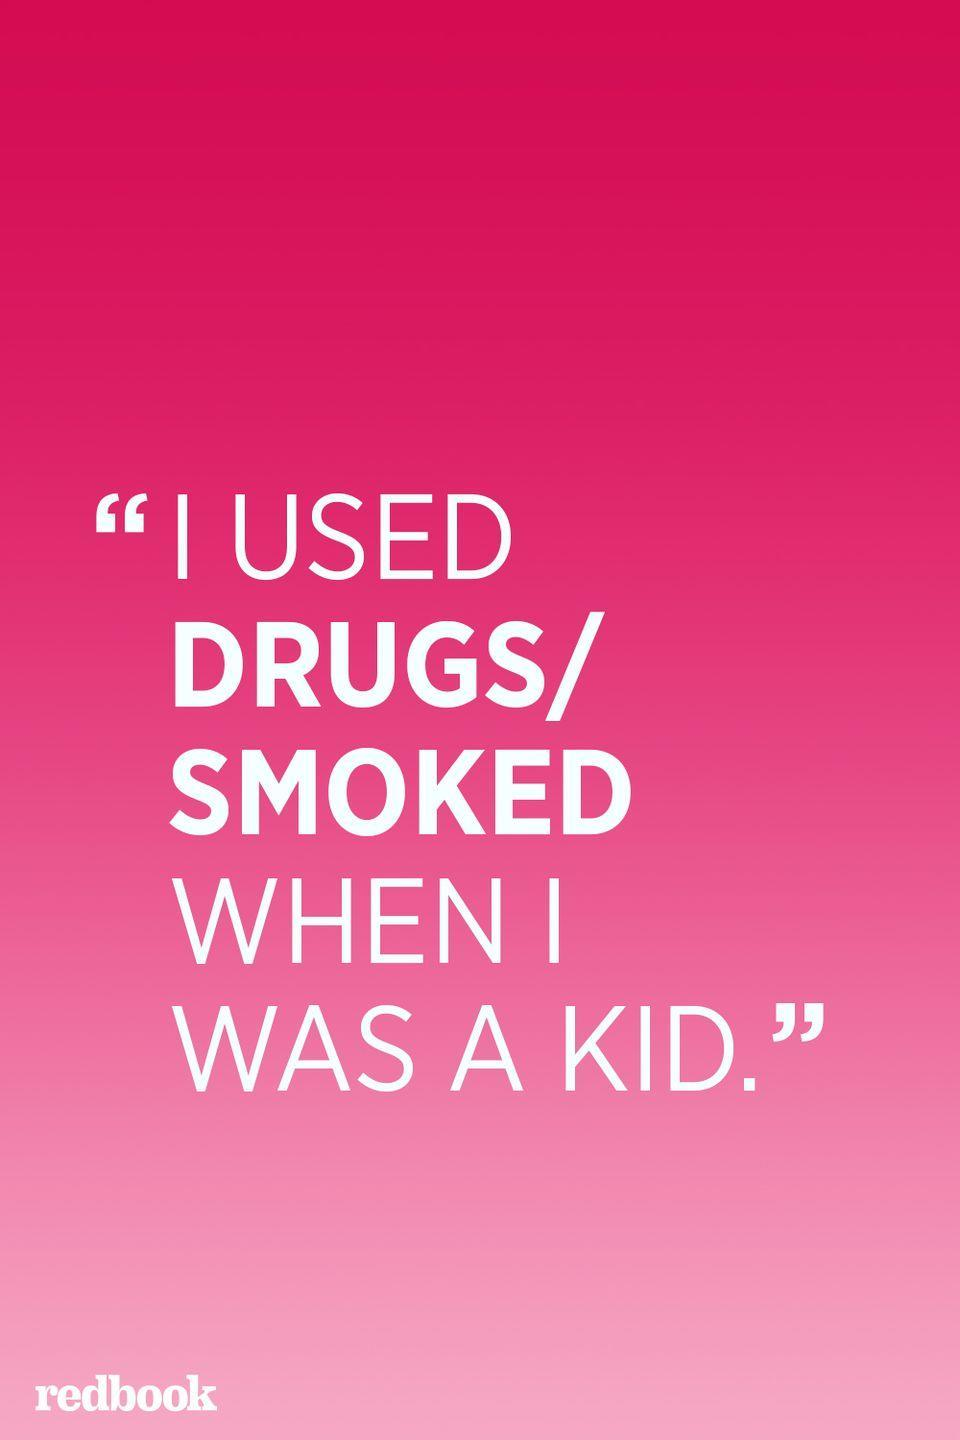 """<p>""""Saying that you used drugs as a kid validates the use of drugs for your own children. Even if your child doesn't respond by saying, 'And you're okay now,' that's probably what they're thinking. Your children will model their behavior based upon yours—if you're not educated enough to explain to your kids why taking drugs is dangerous, don't give them tacit license to use because you did,"""" says <a href=""""http://www.bily.org/"""" rel=""""nofollow noopener"""" target=""""_blank"""" data-ylk=""""slk:Dennis Poncher"""" class=""""link rapid-noclick-resp"""">Dennis Poncher</a>, author and founder of the support group network <a href=""""http://www.bily.org/"""" rel=""""nofollow noopener"""" target=""""_blank"""" data-ylk=""""slk:Because I Love You"""" class=""""link rapid-noclick-resp"""">Because I Love You</a>.</p>"""